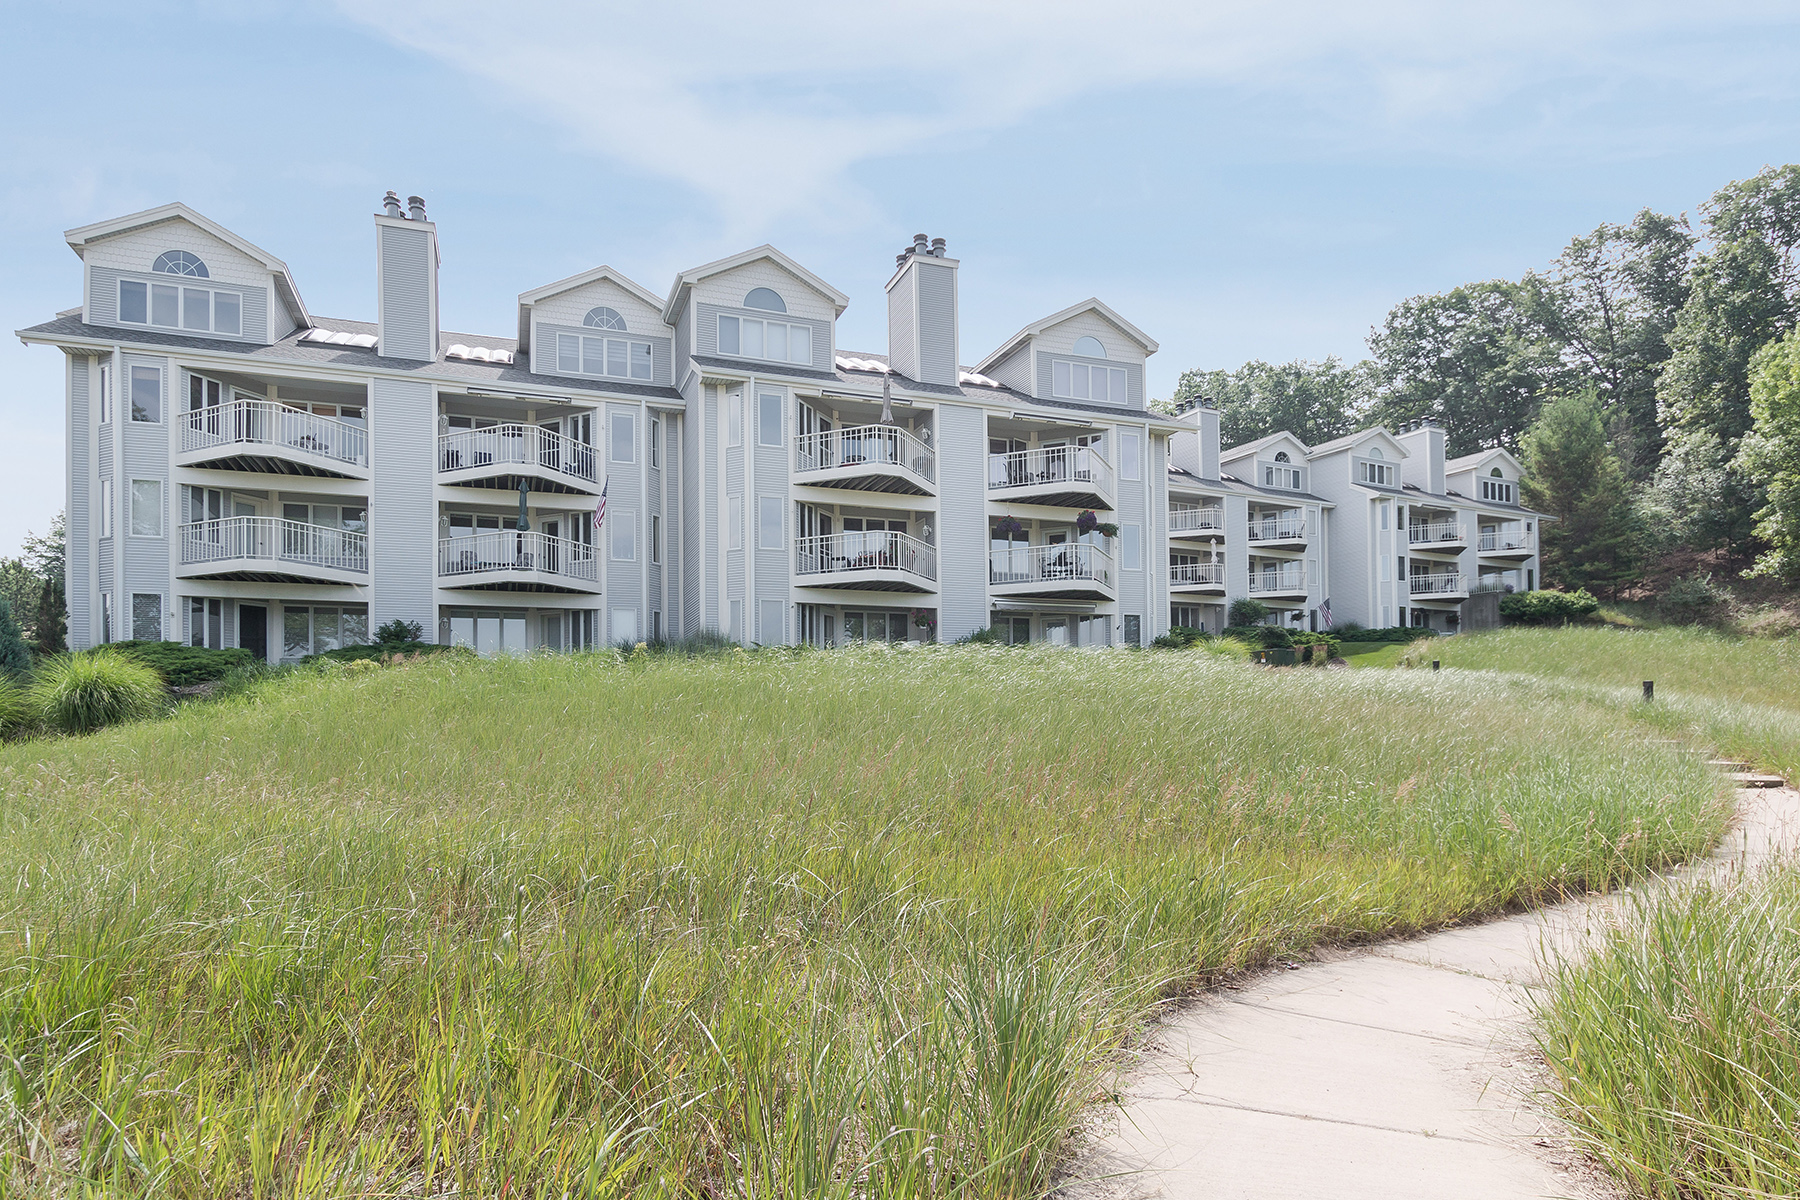 Condominium for Sale at Discreet Condo With Harbor Views 810 South Harbor Drive 19 Grand Haven, Michigan, 49417 United States